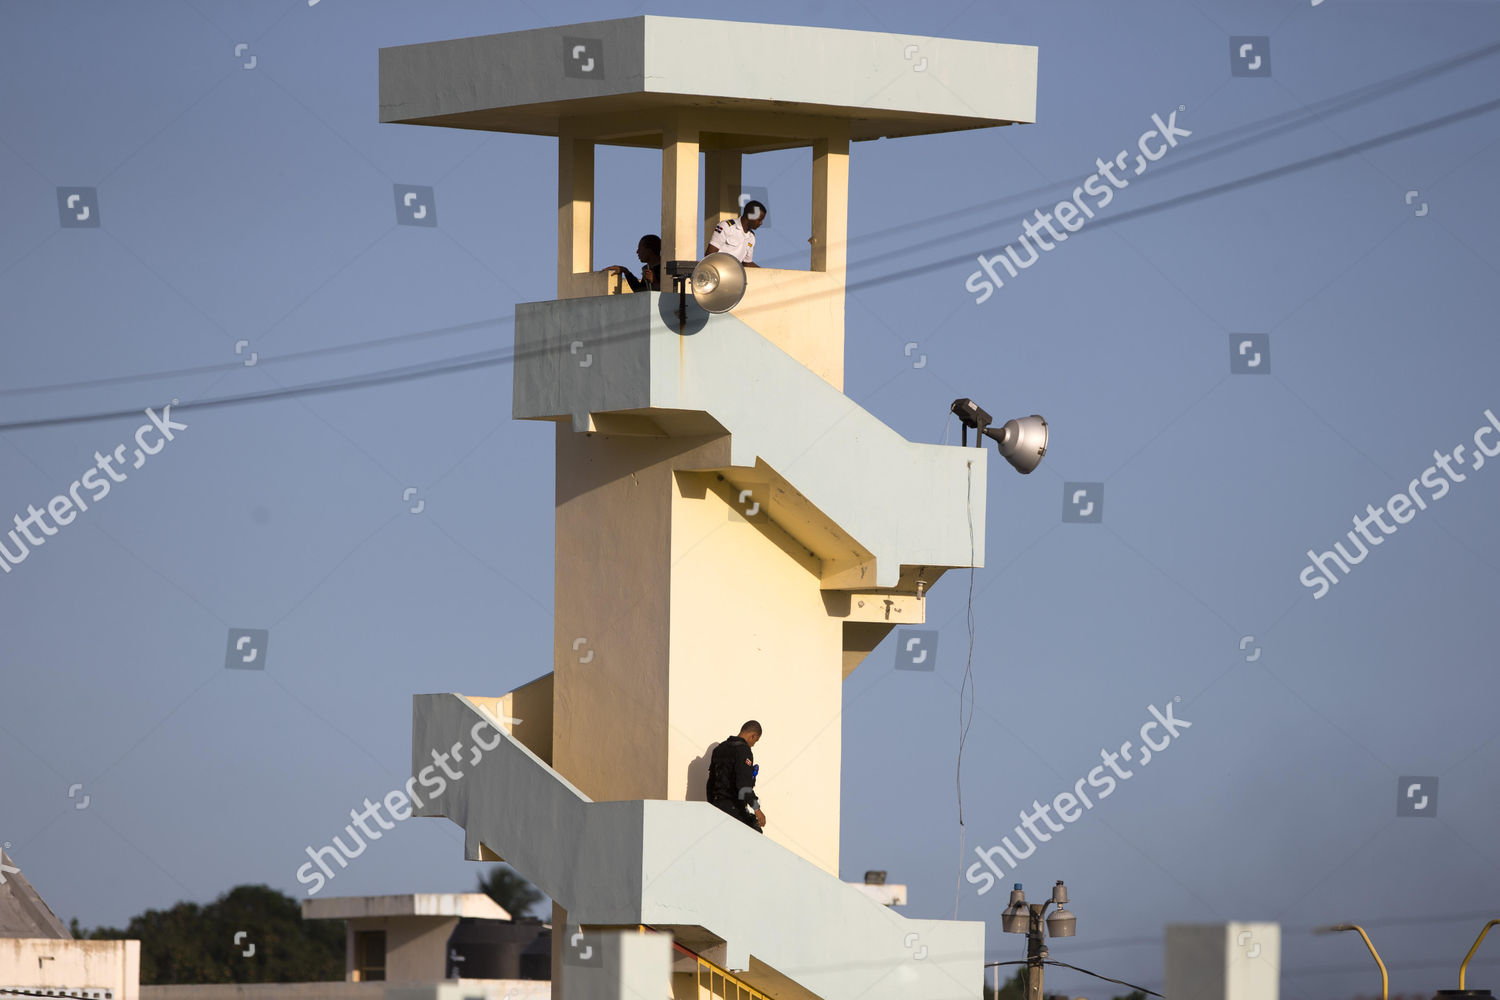 Surveillance Penitentiary Treatment members stand guard tower